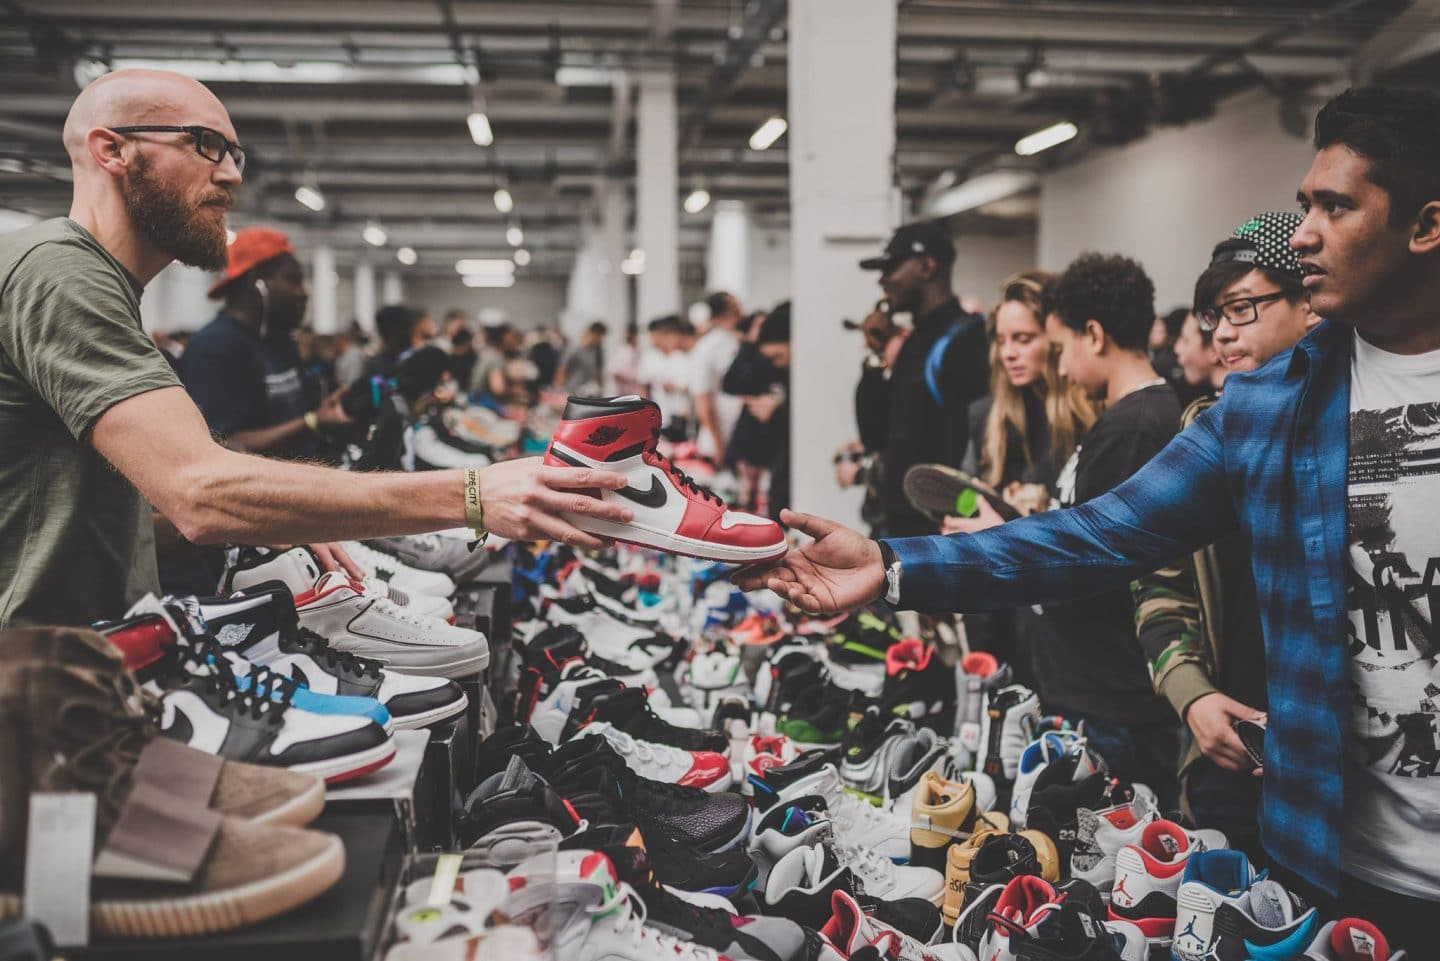 Europe's Biggest Trainer Festival Is Coming To Manchester